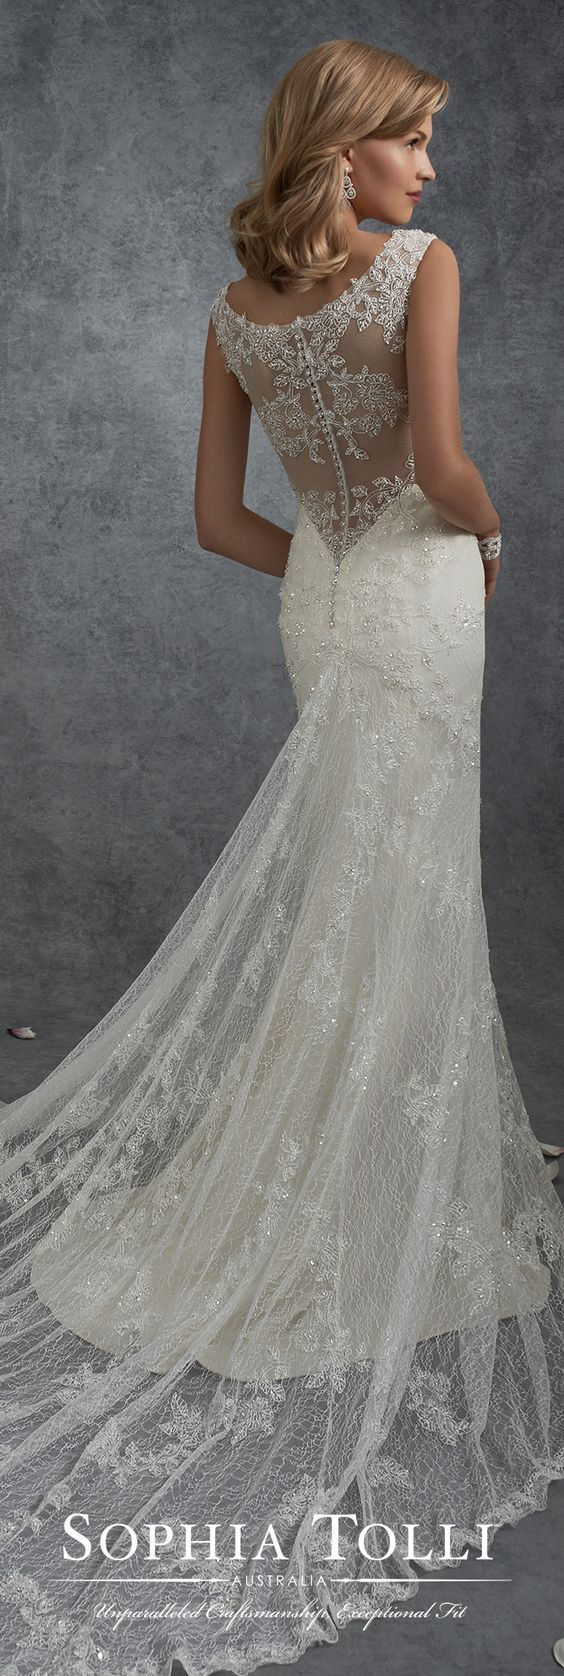 Lace vneck wedding dress with an illusion back sophia tolli y